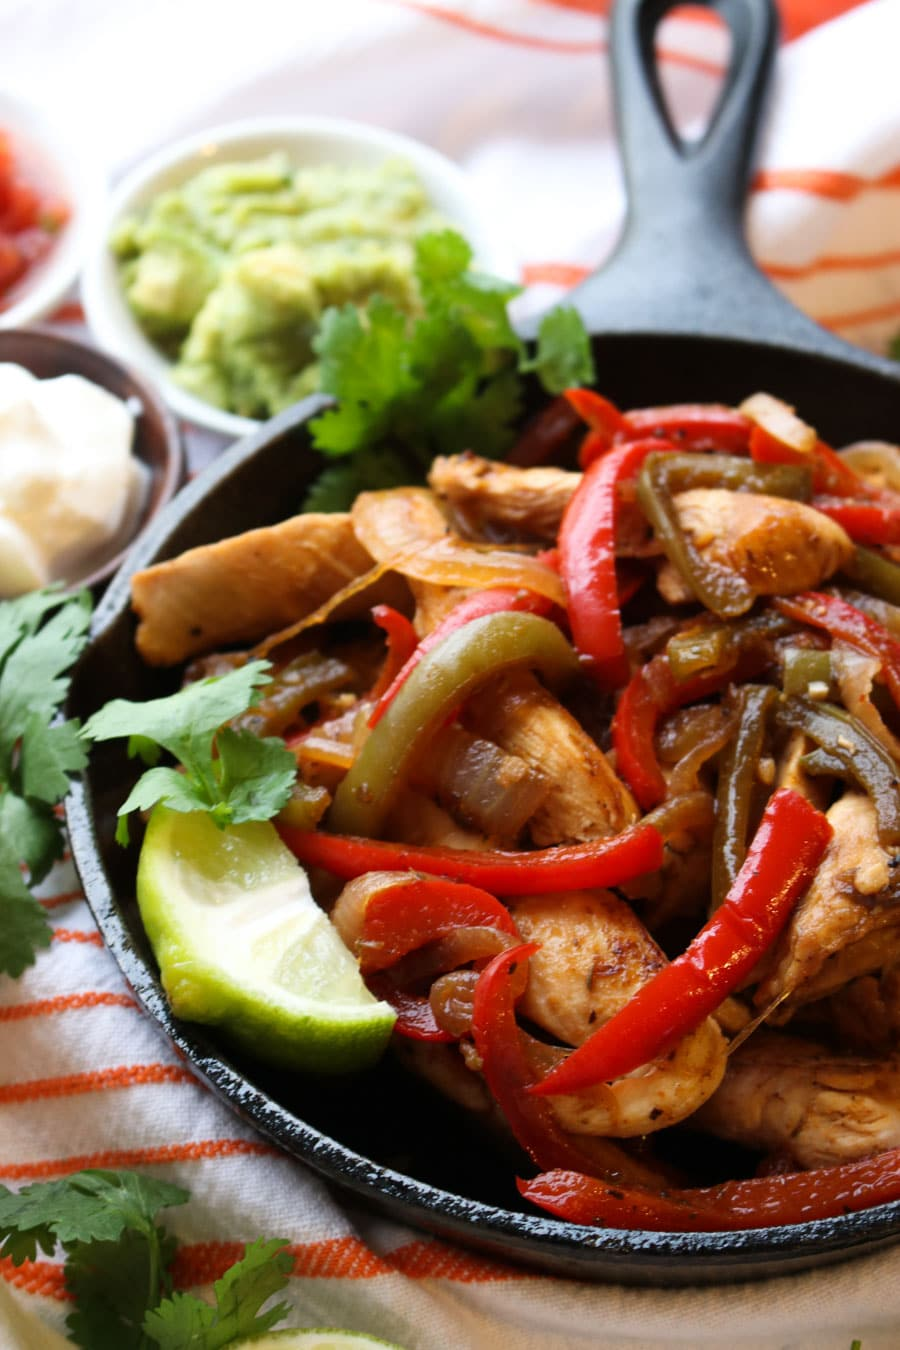 TEQUILA CHICKEN FAJITAS CLOSE UP